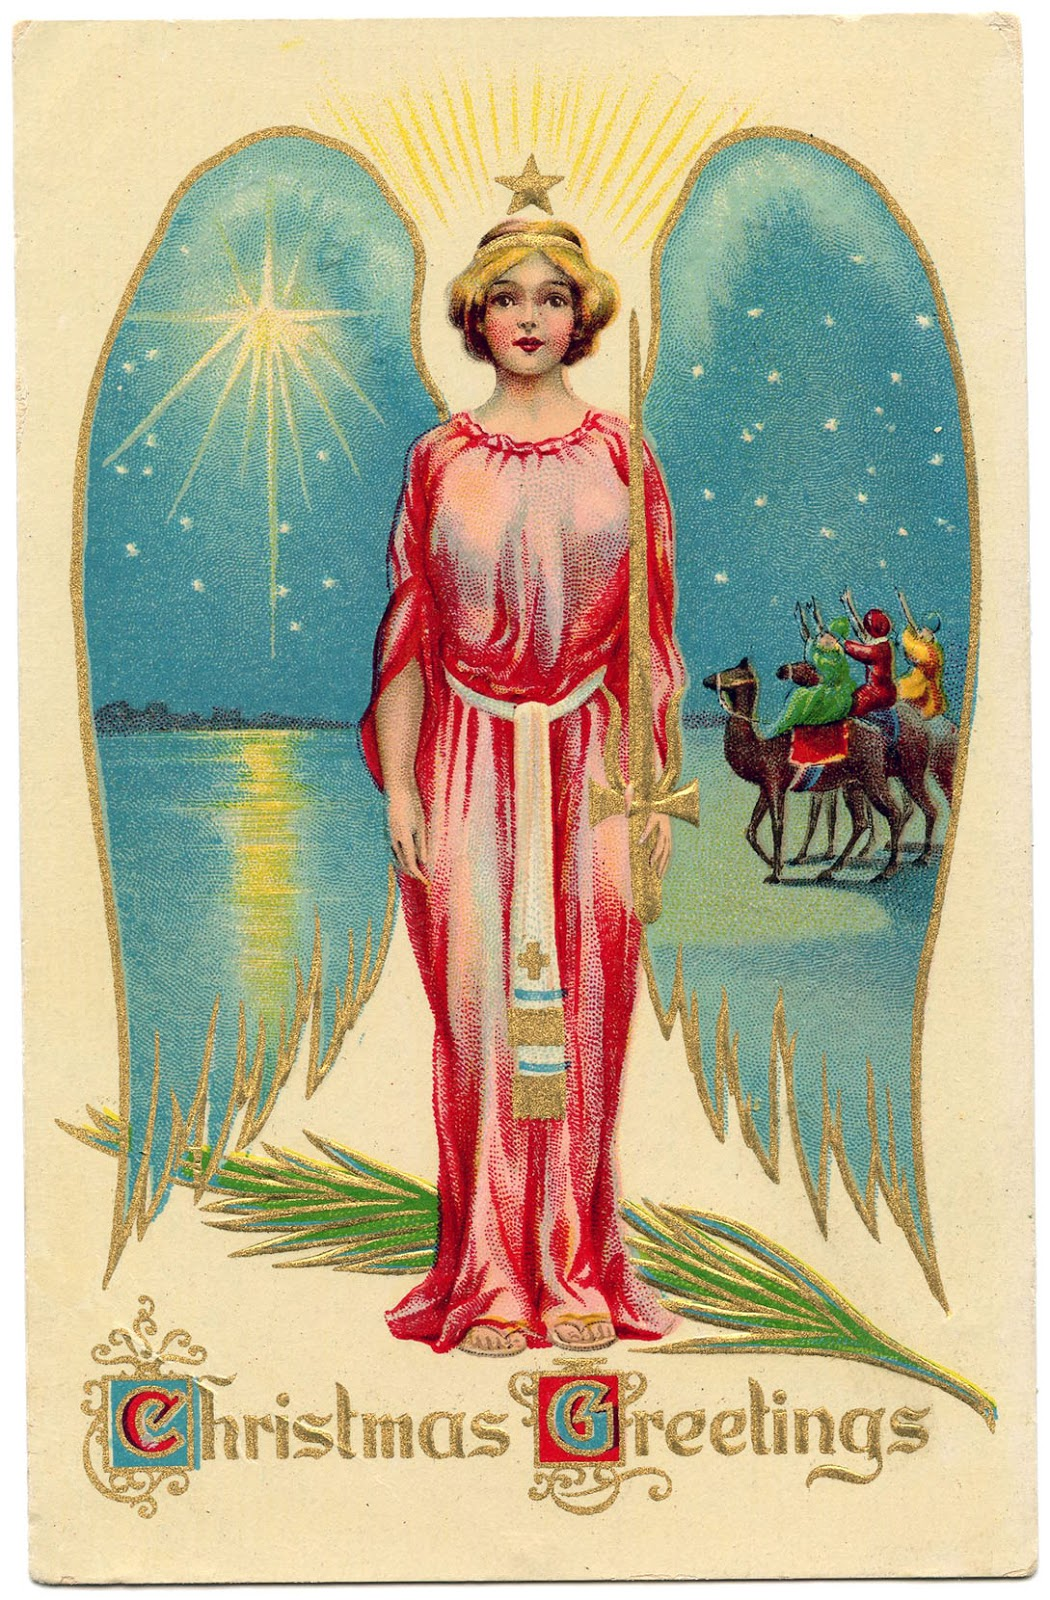 Vintage Christmas Image - Starry Winged Angel - The Graphics Fairy